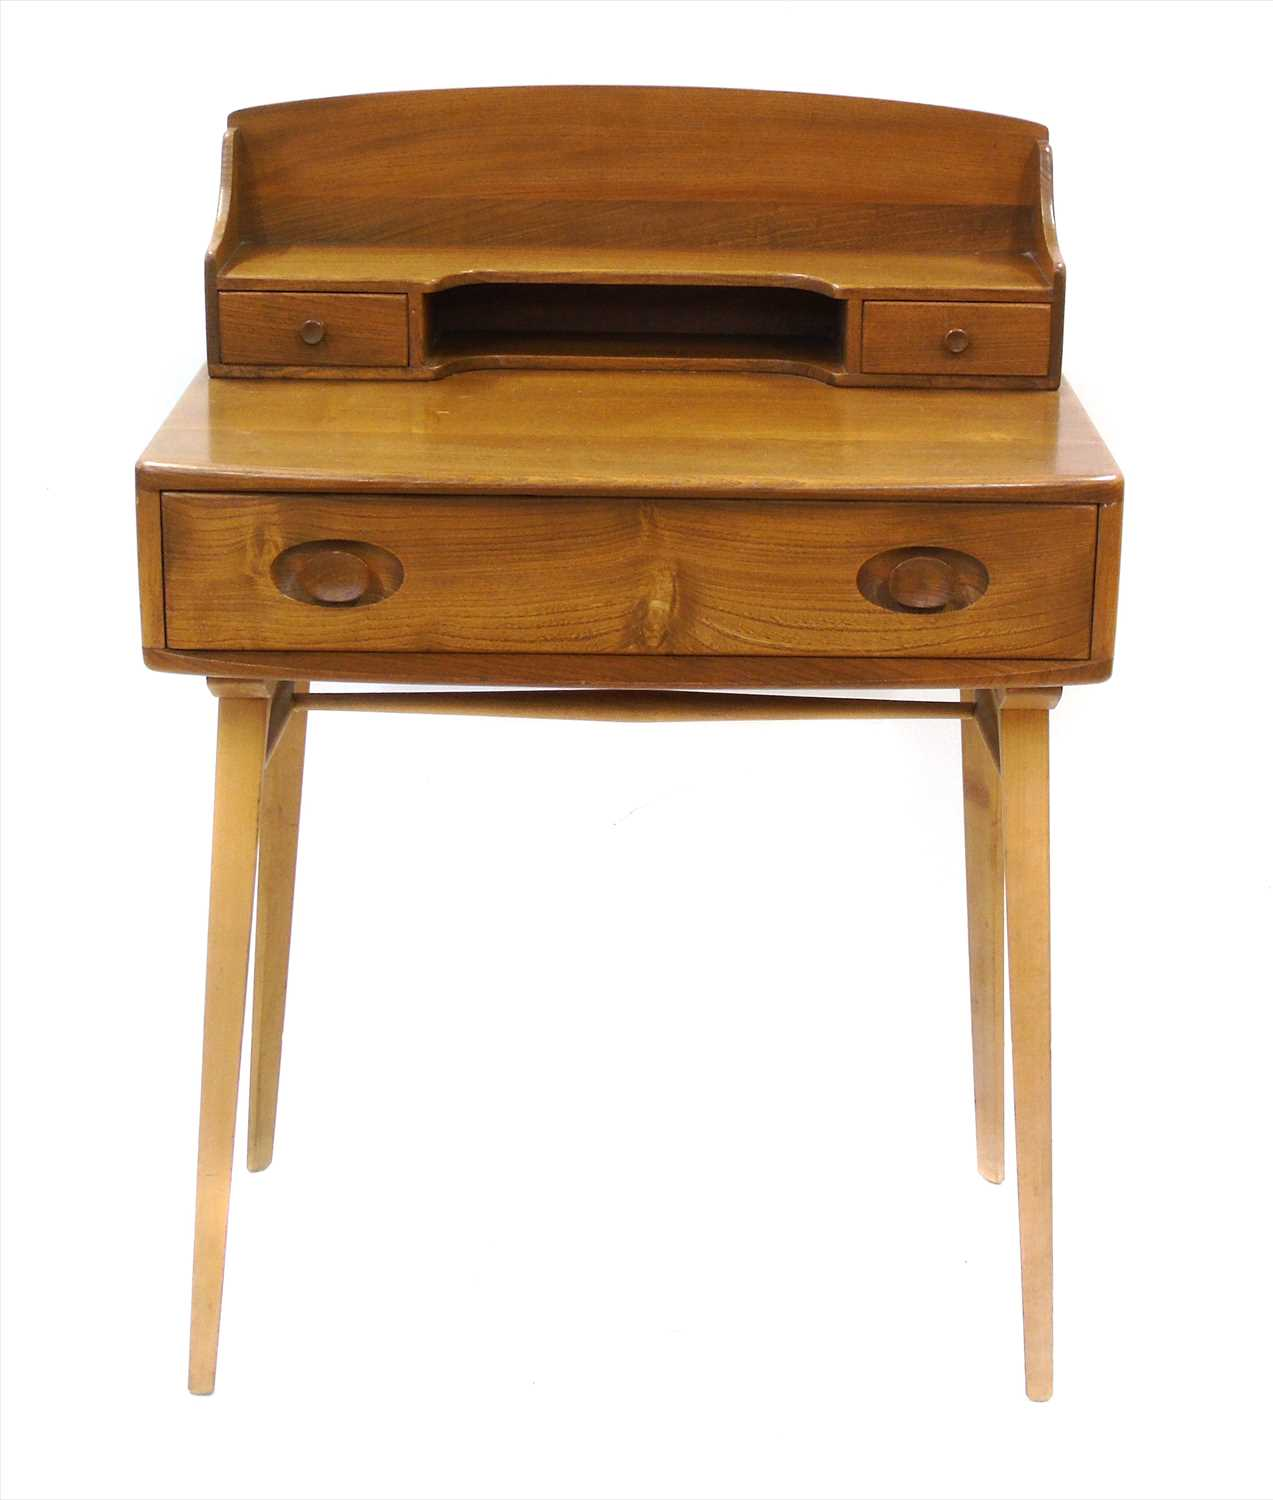 210 - Ercol ash and elm writing desk